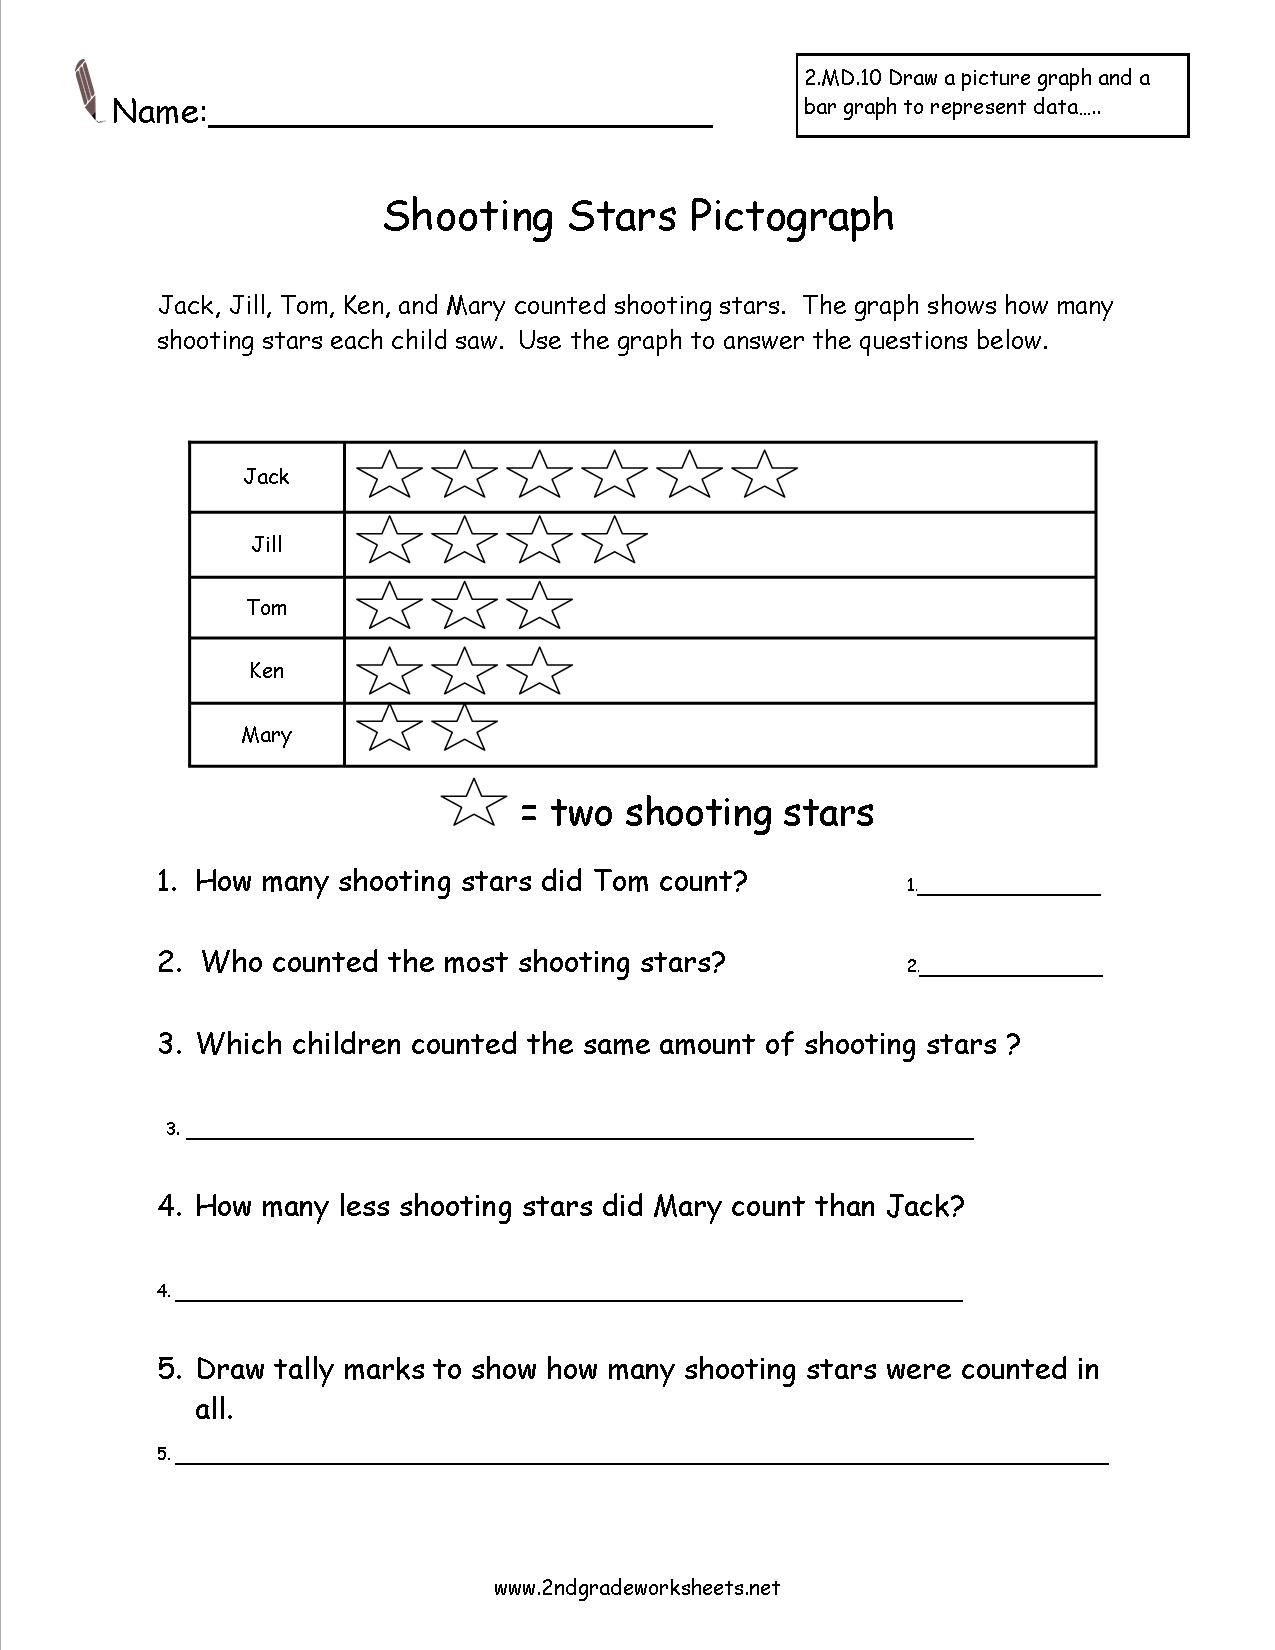 2nd Grade Pictograph Worksheets Shooting Stars Pictograph Worksheet